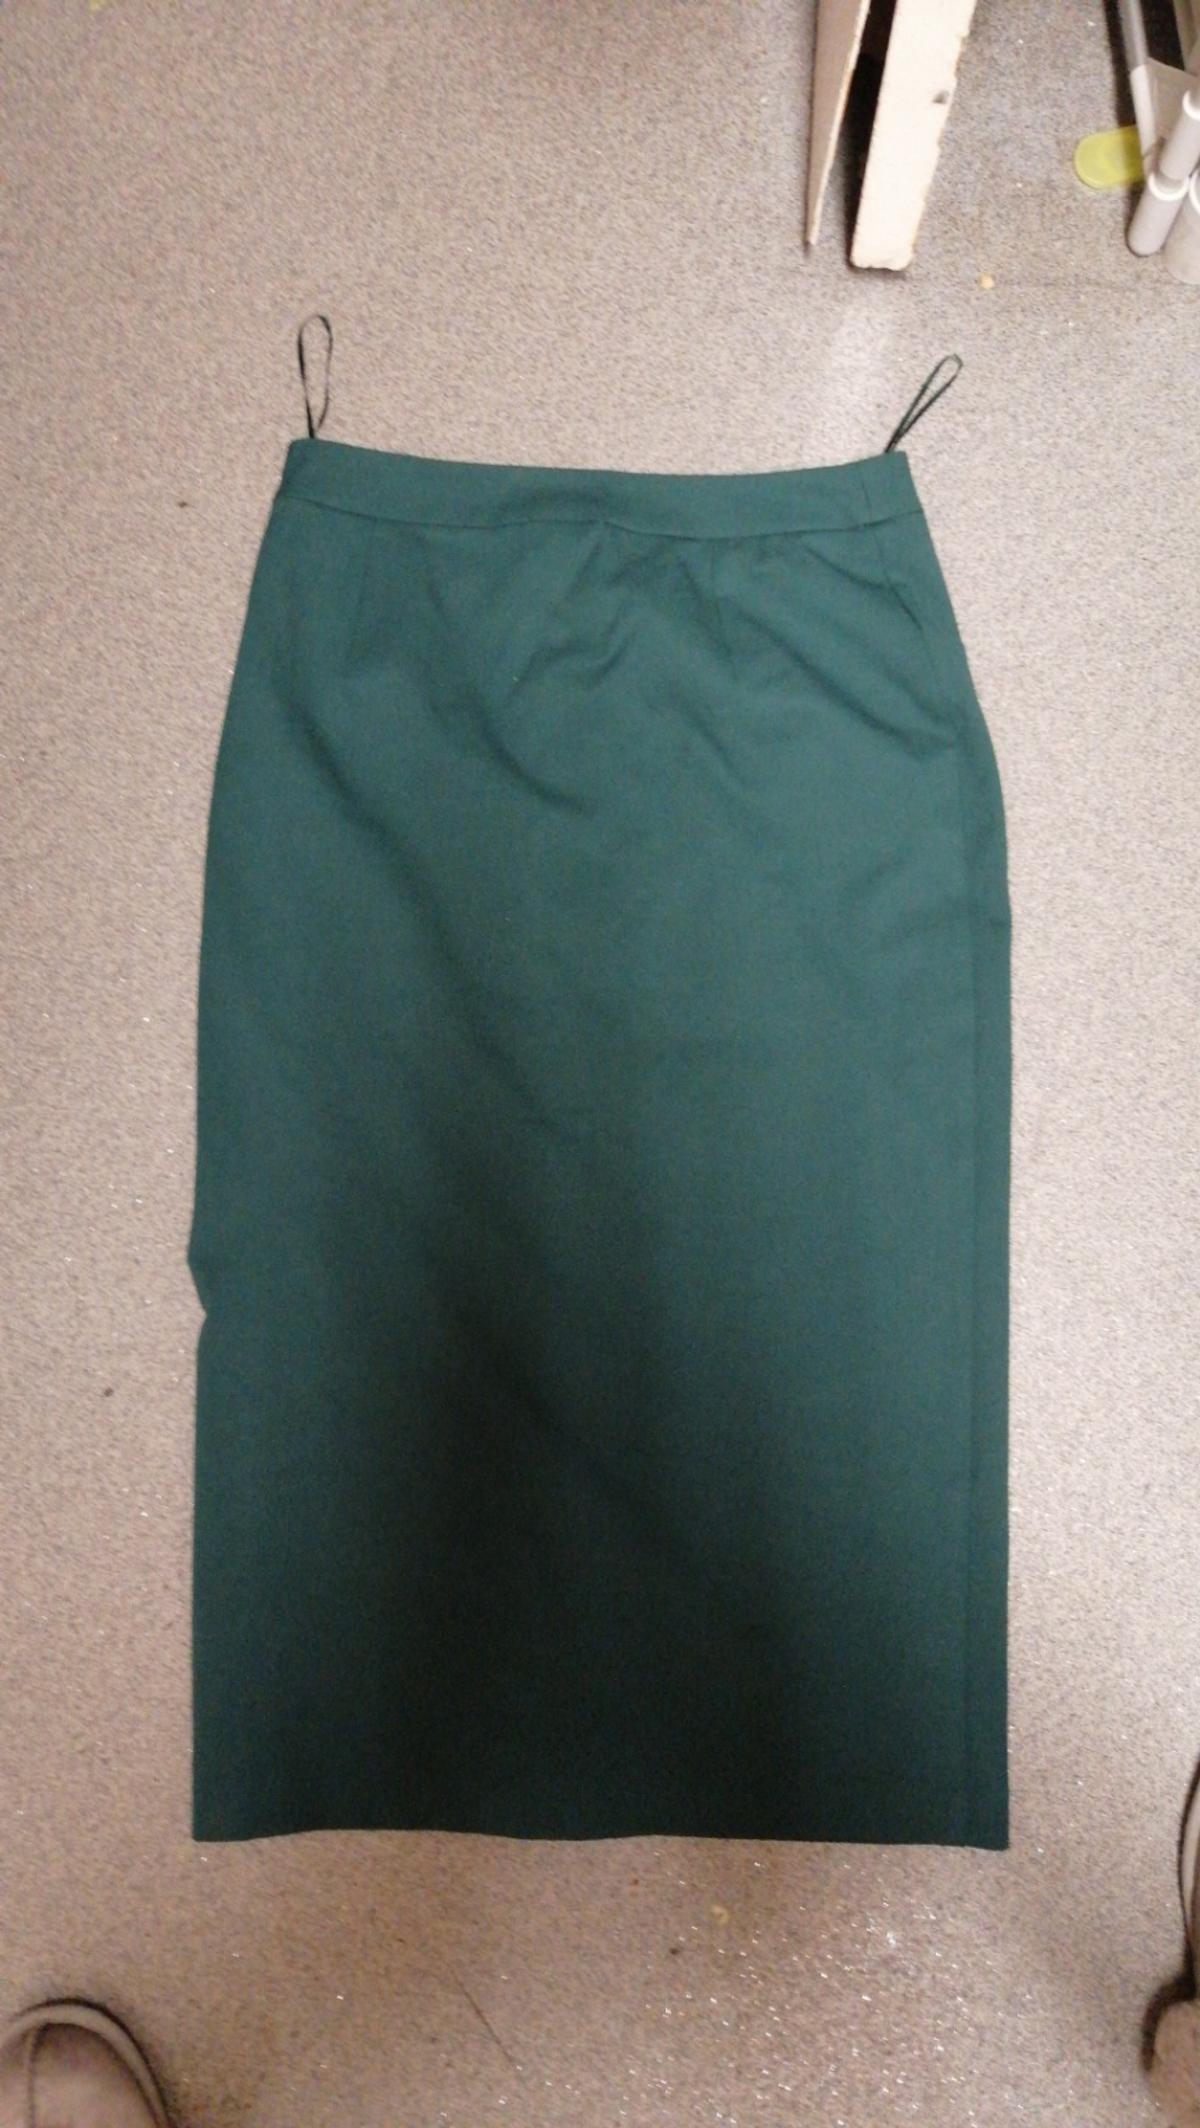 ladies m&s emerald green A-line skirt with metal fake buttons down the front still with tag on never worn size 12 rrp£39.95